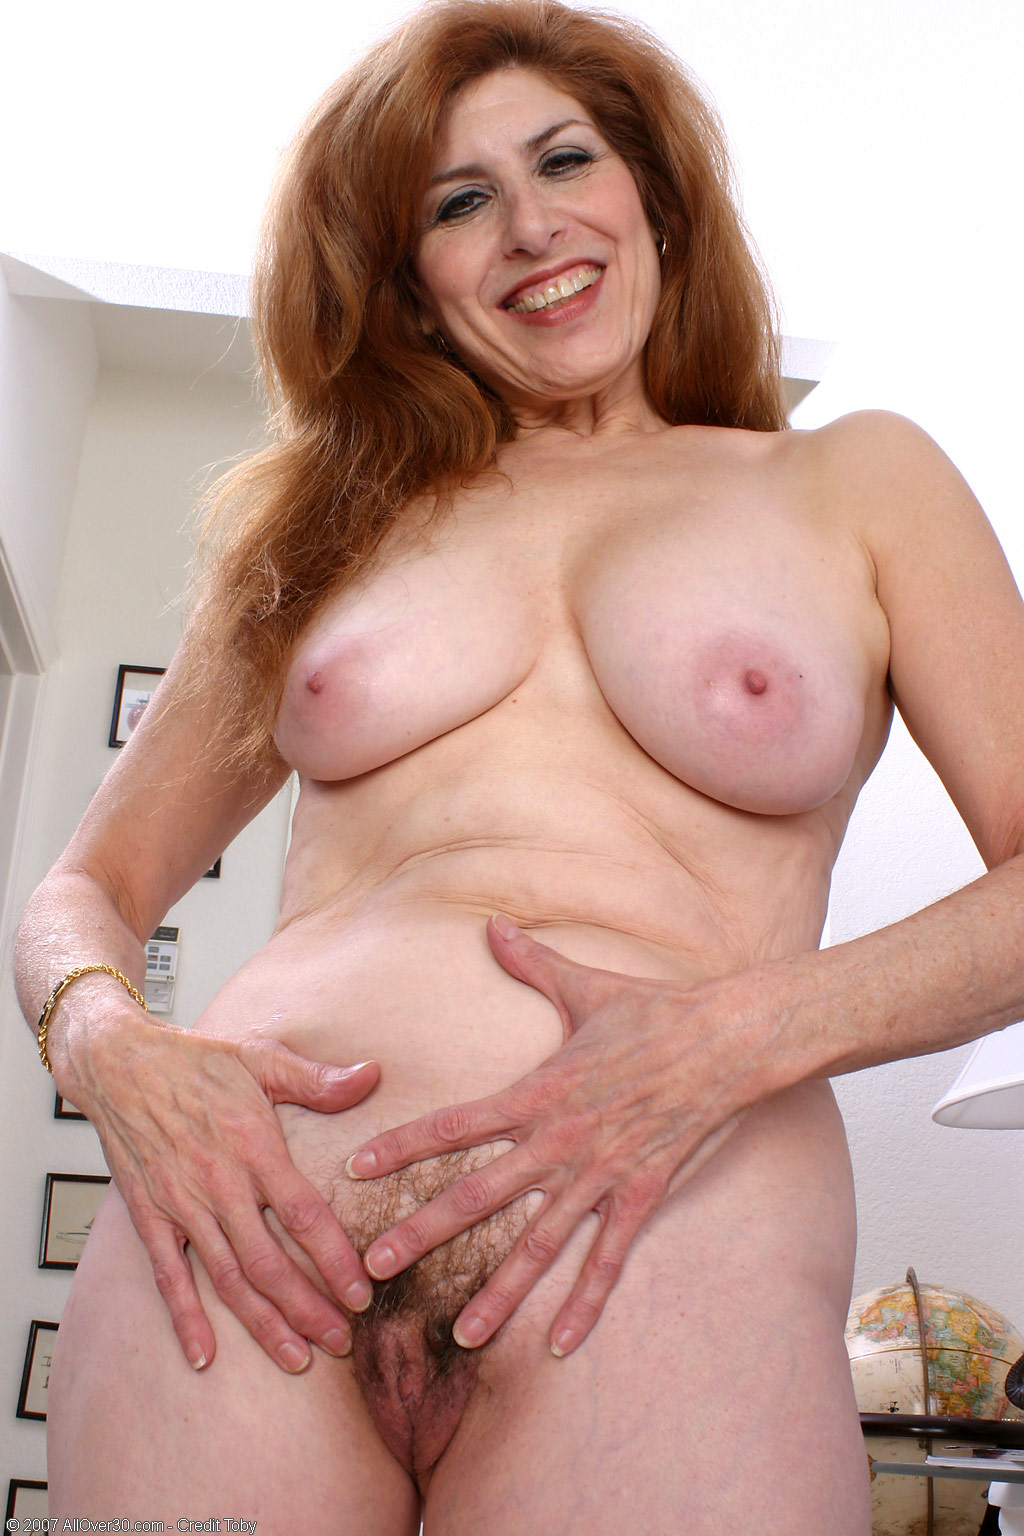 Mature older women nude